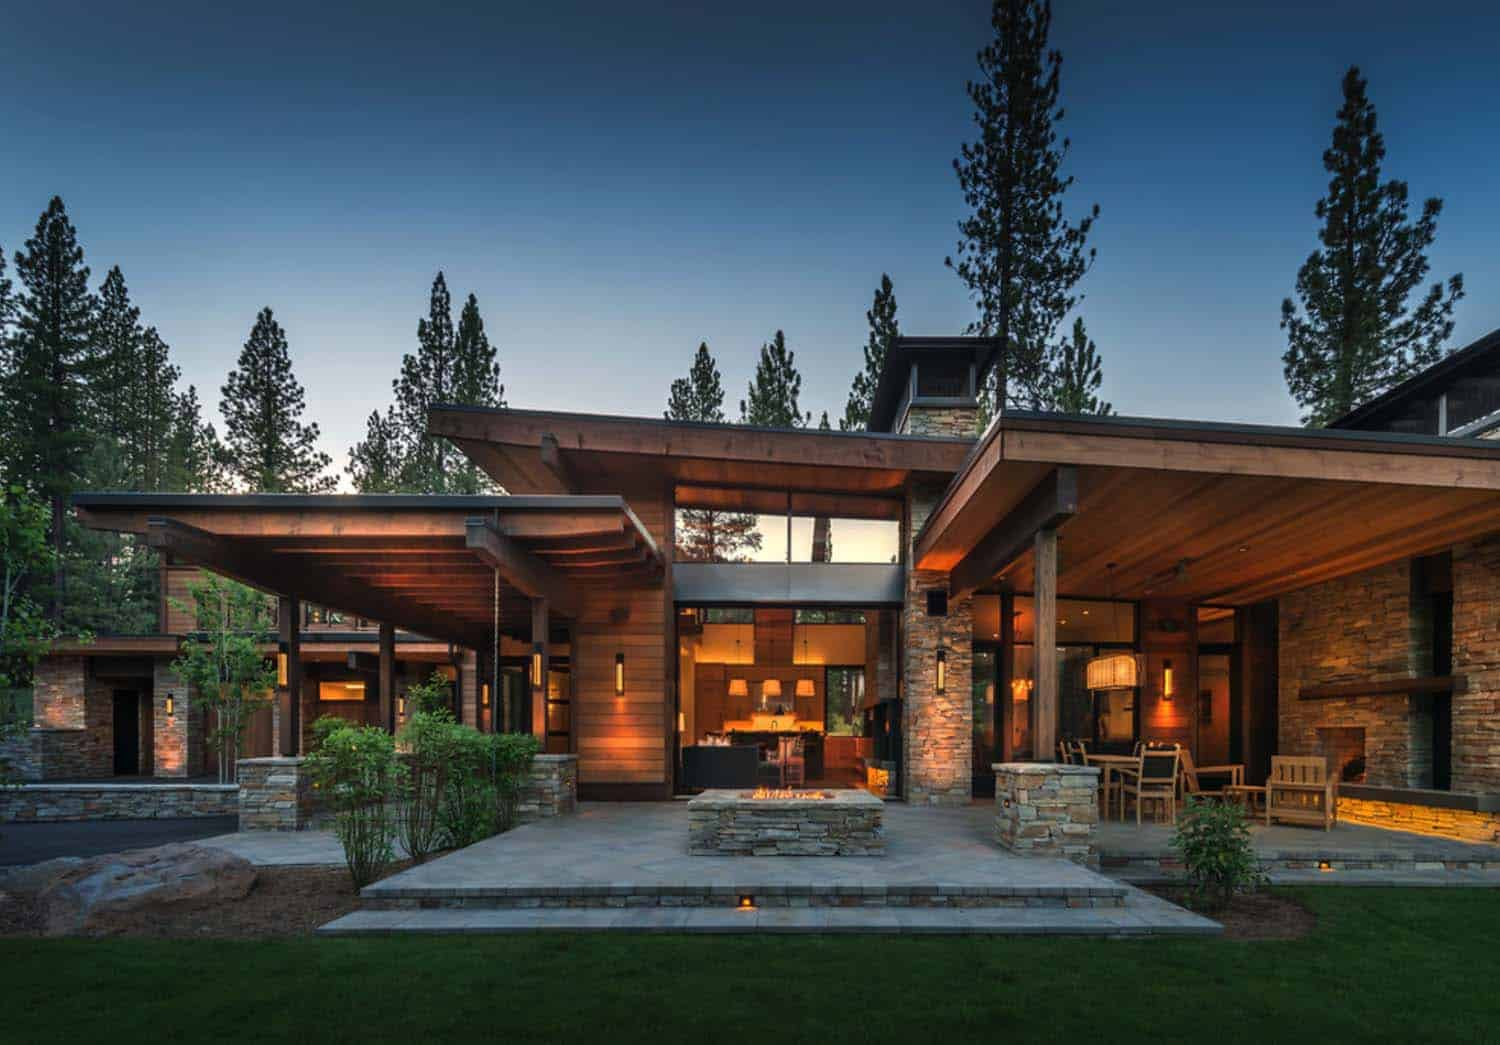 Mountain modern home in martis camp with indoor outdoor living for Mountain home architects